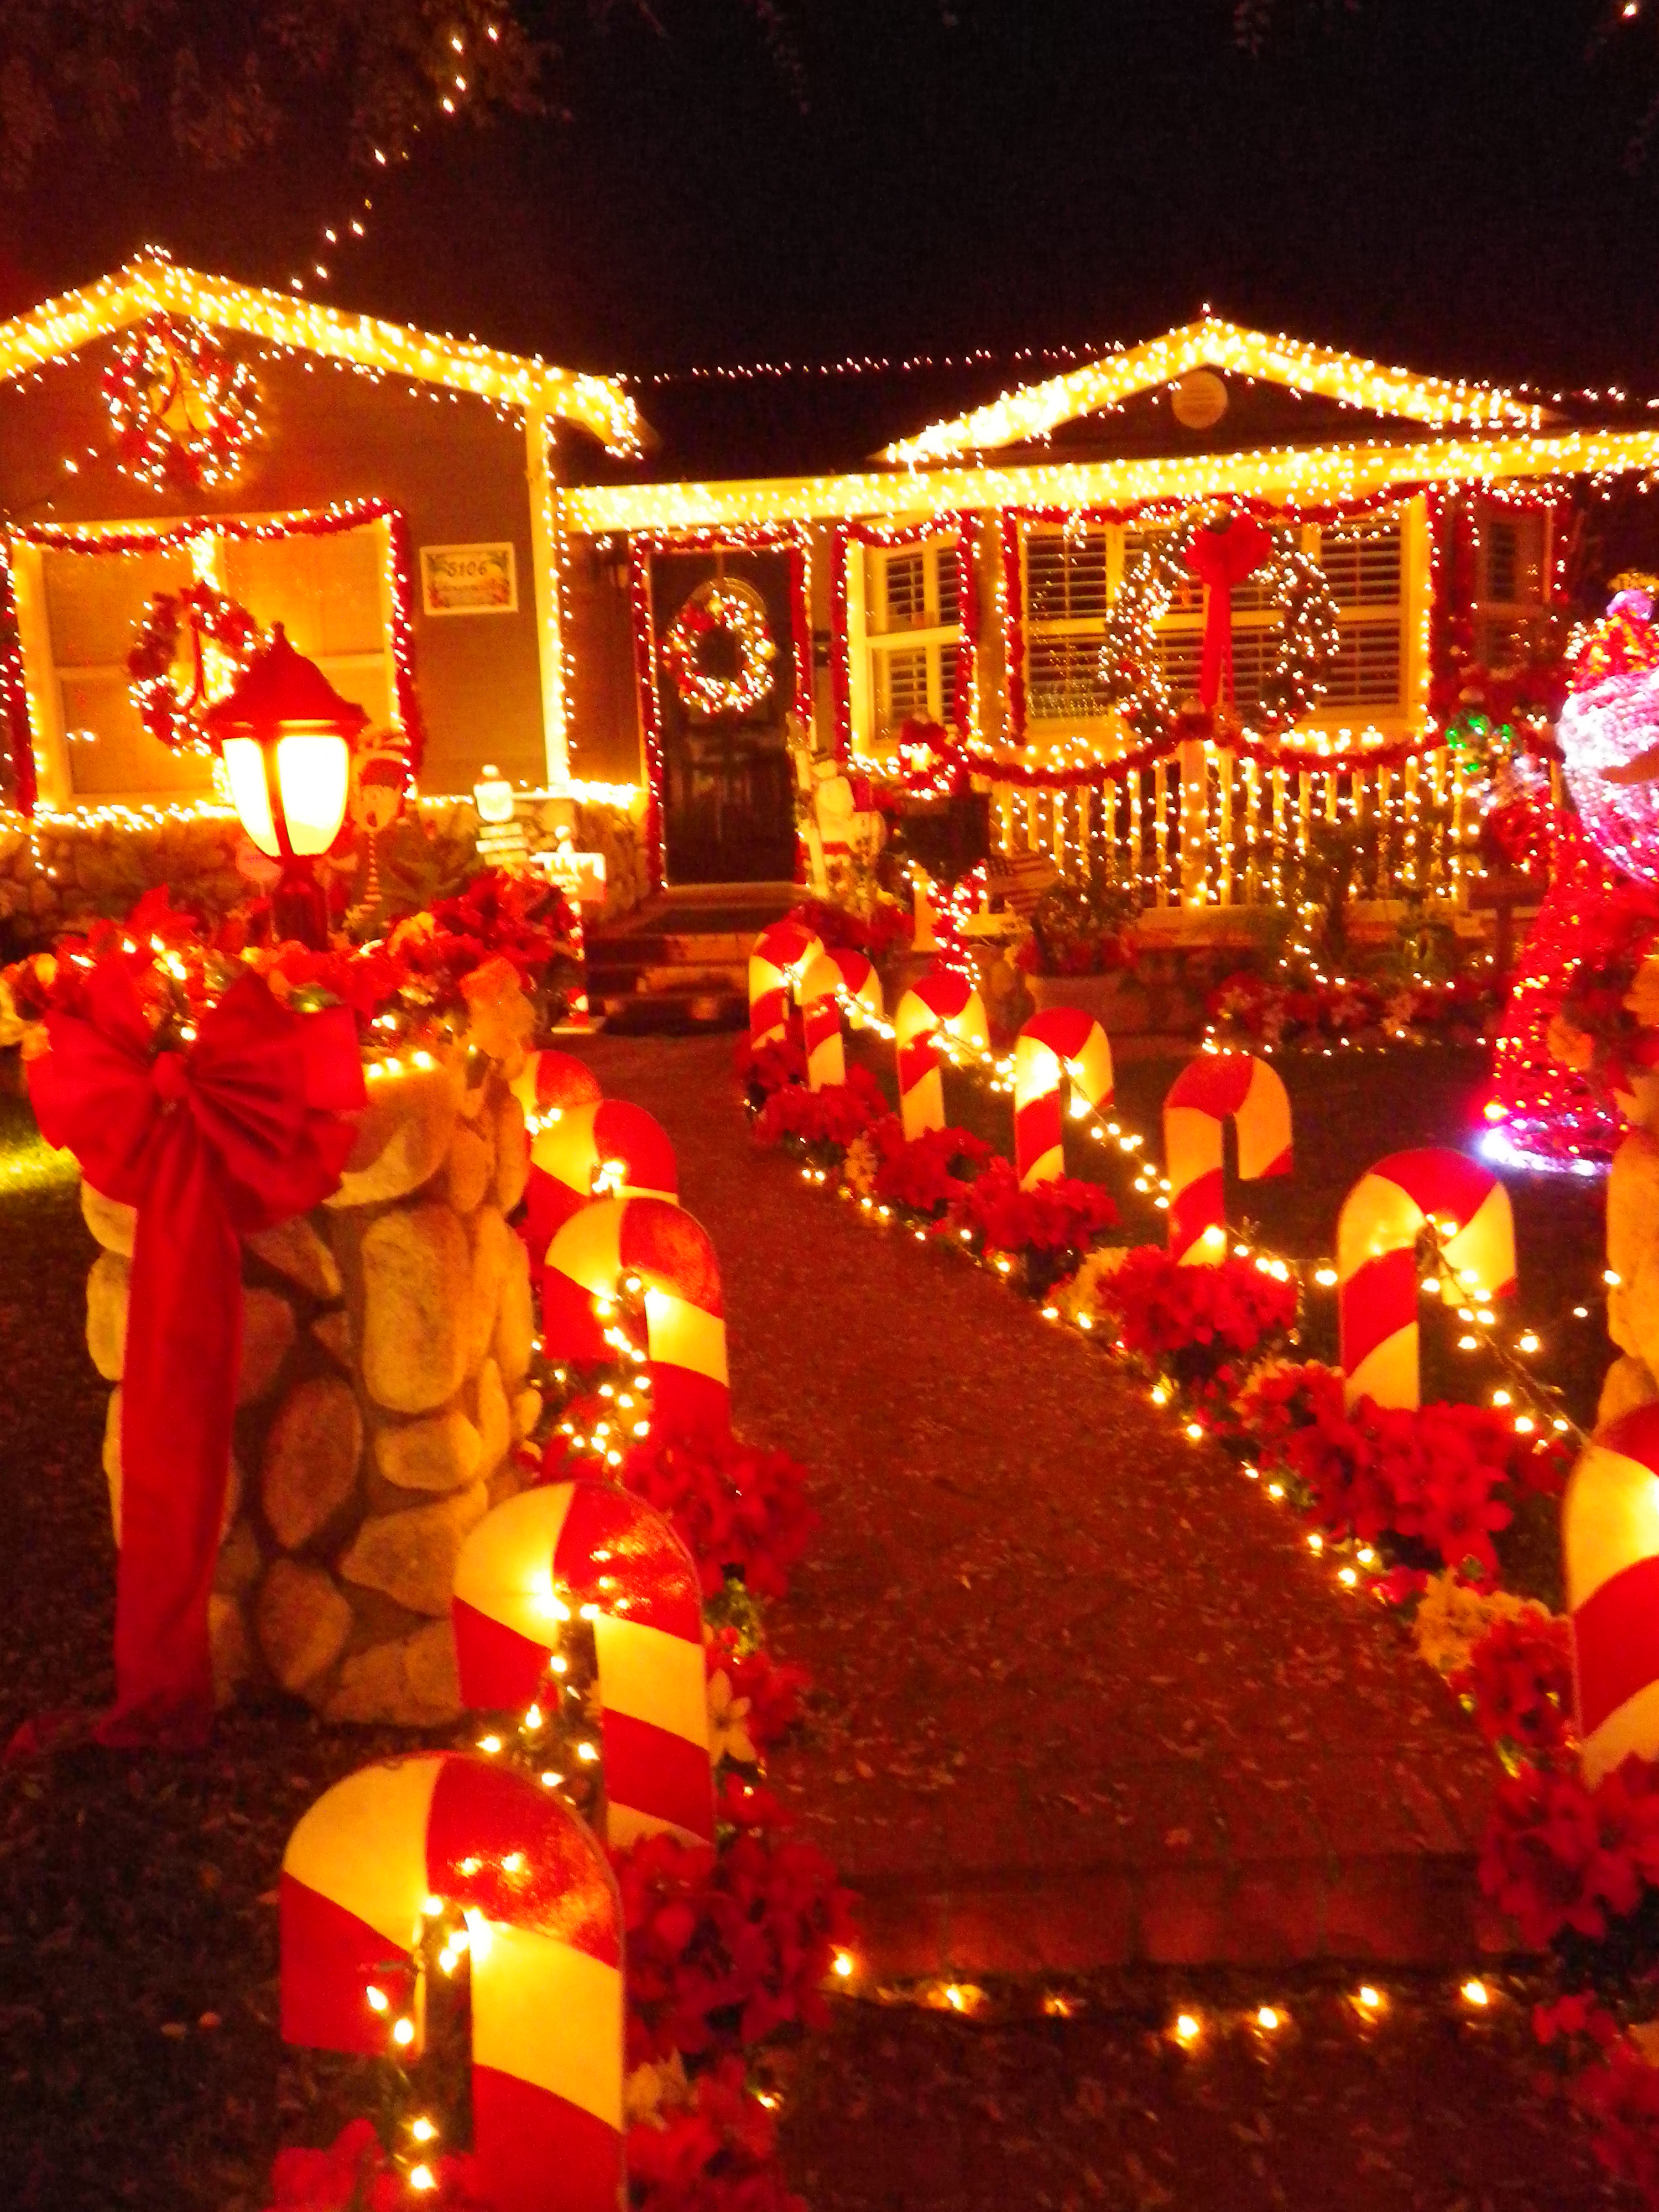 Why do we decorate with christmas lights - Although We Don T Get To See Any Snow Here In Southern California We Do Get To See An Amazing Display Of Christmas Lights In Torrance A City About Thirty